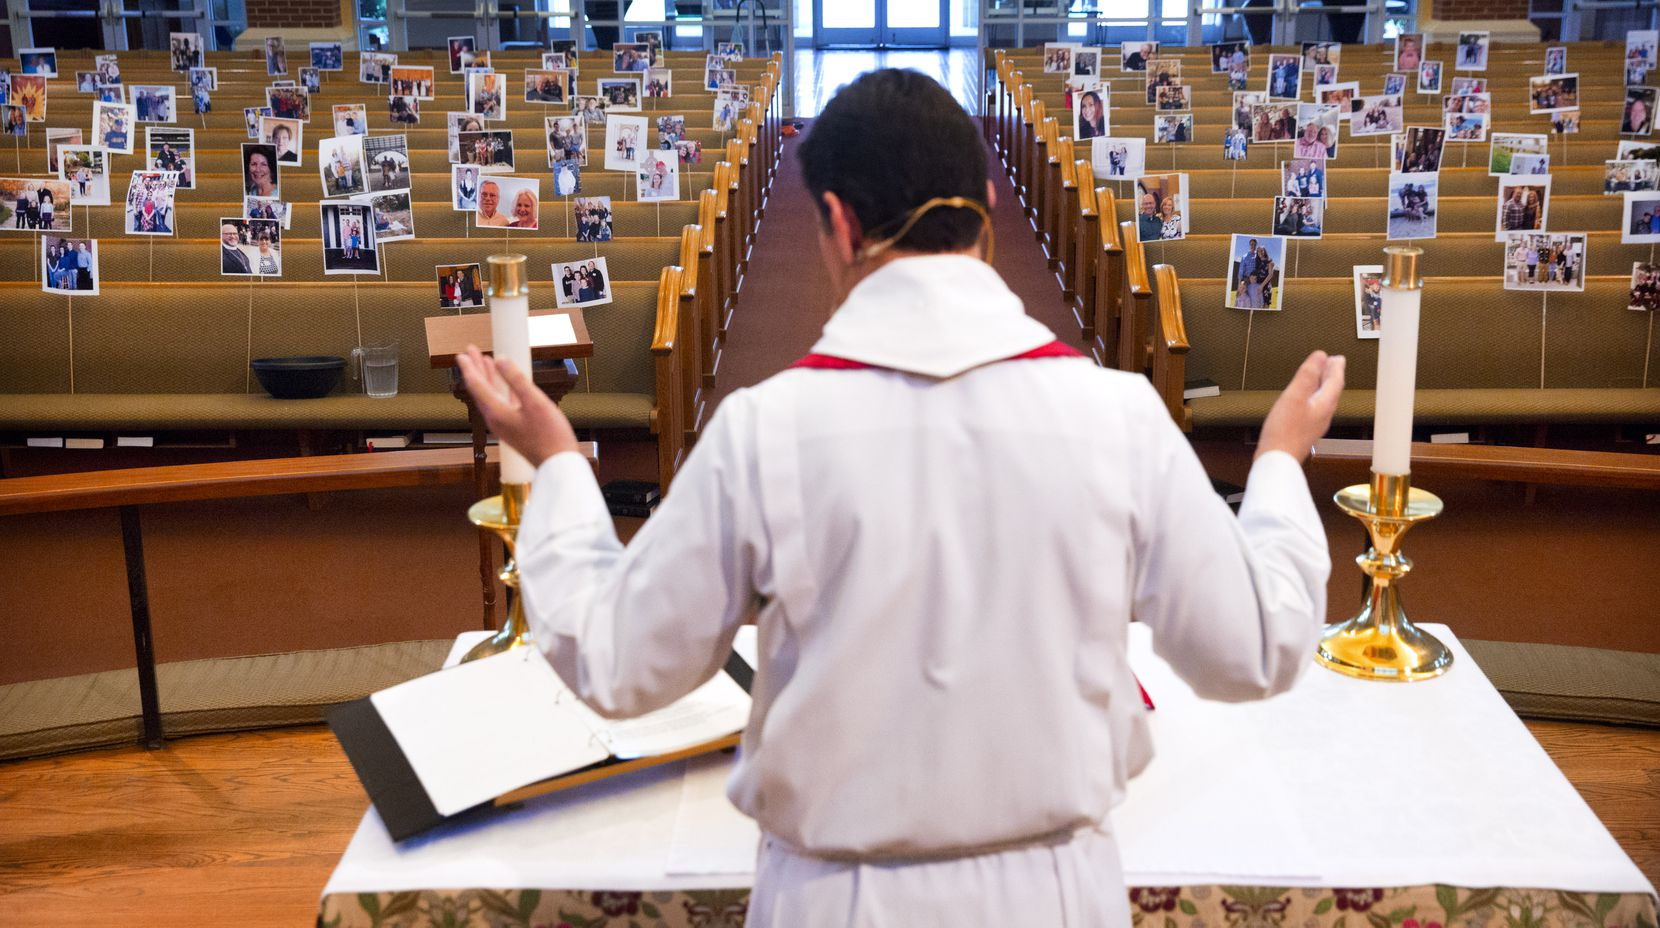 Father Clayton Elder rehearsed his Holy Thursday service in front of a sanctuary full of parishioners' photos in April before going live on YouTube at St. Philip Episcopal Church in Frisco.